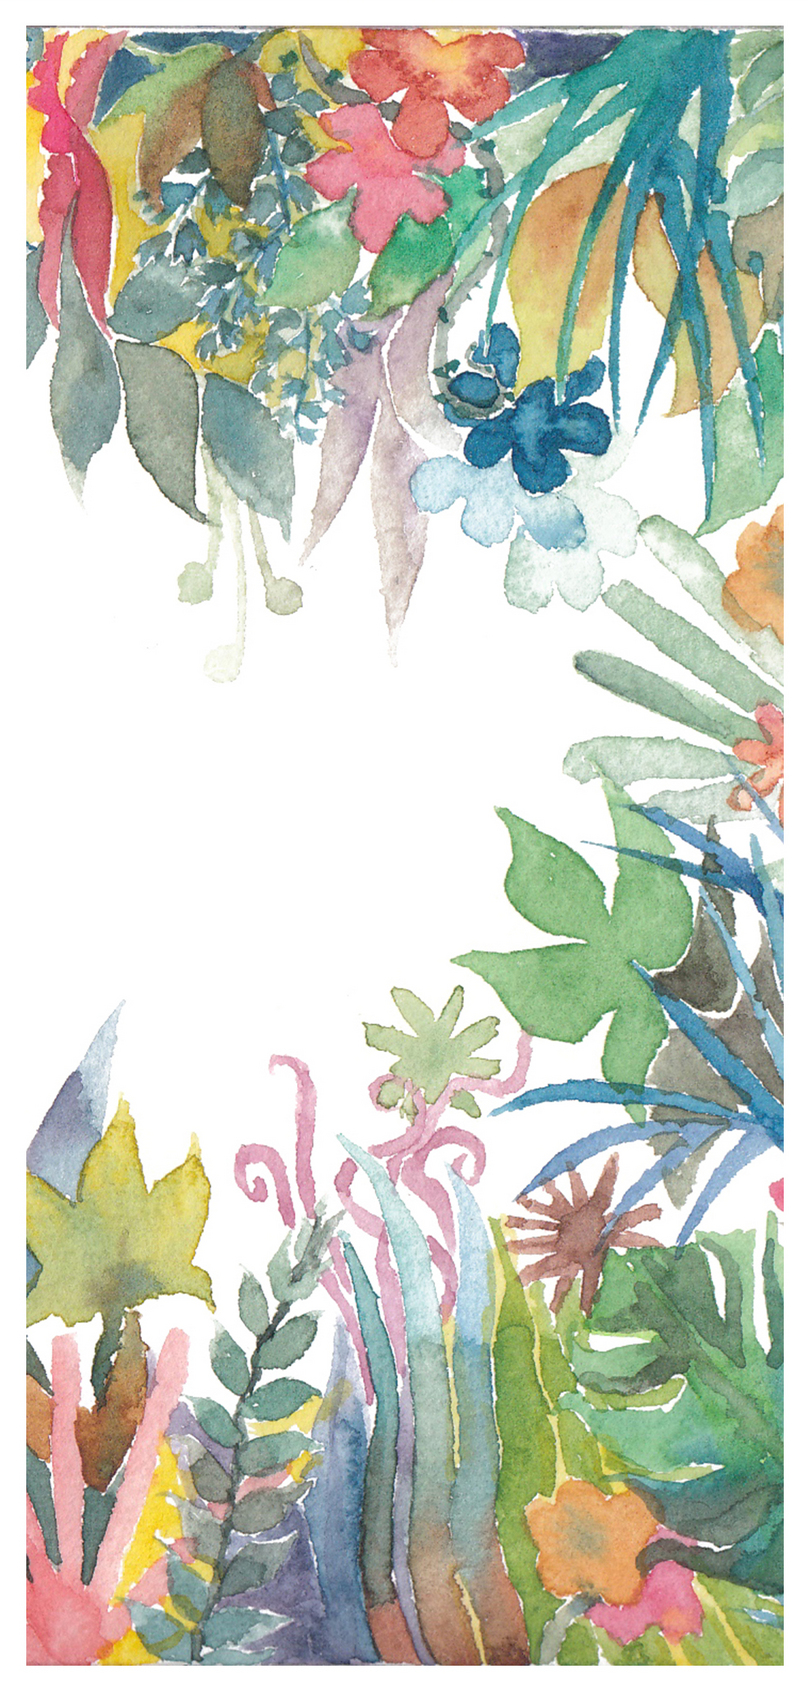 Watercolor Plant Cell Phone Wallpaper Backgrounds Image Picture